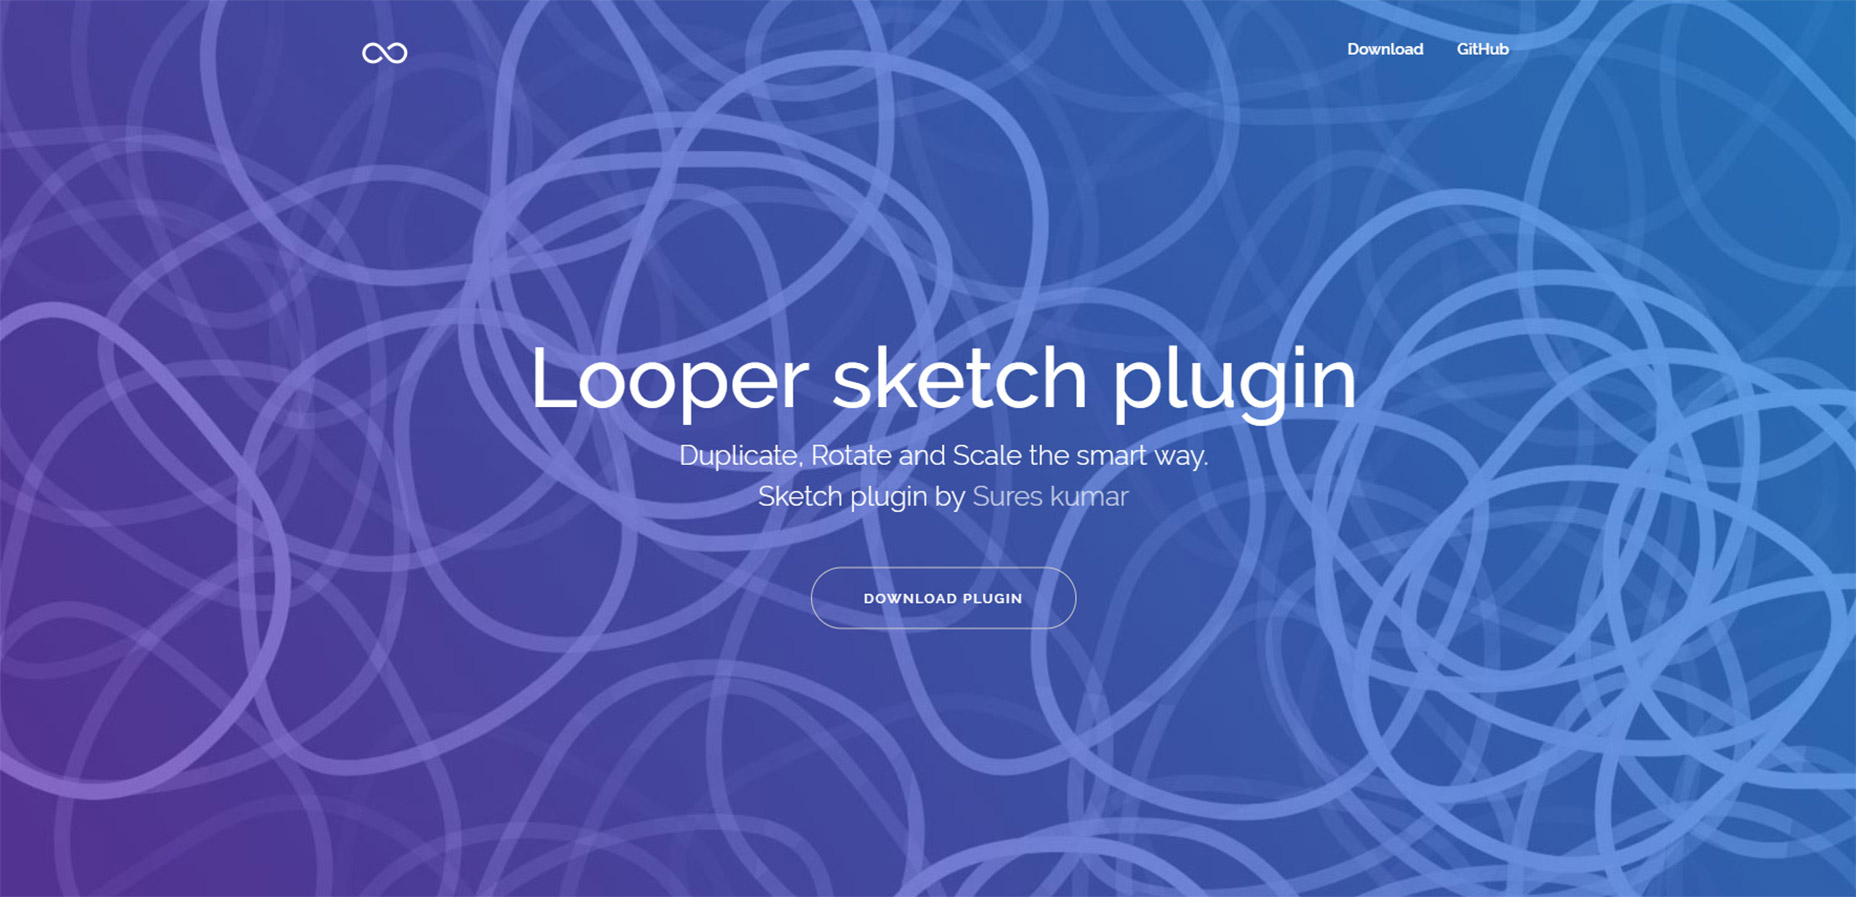 05-looper-sketch-plugin